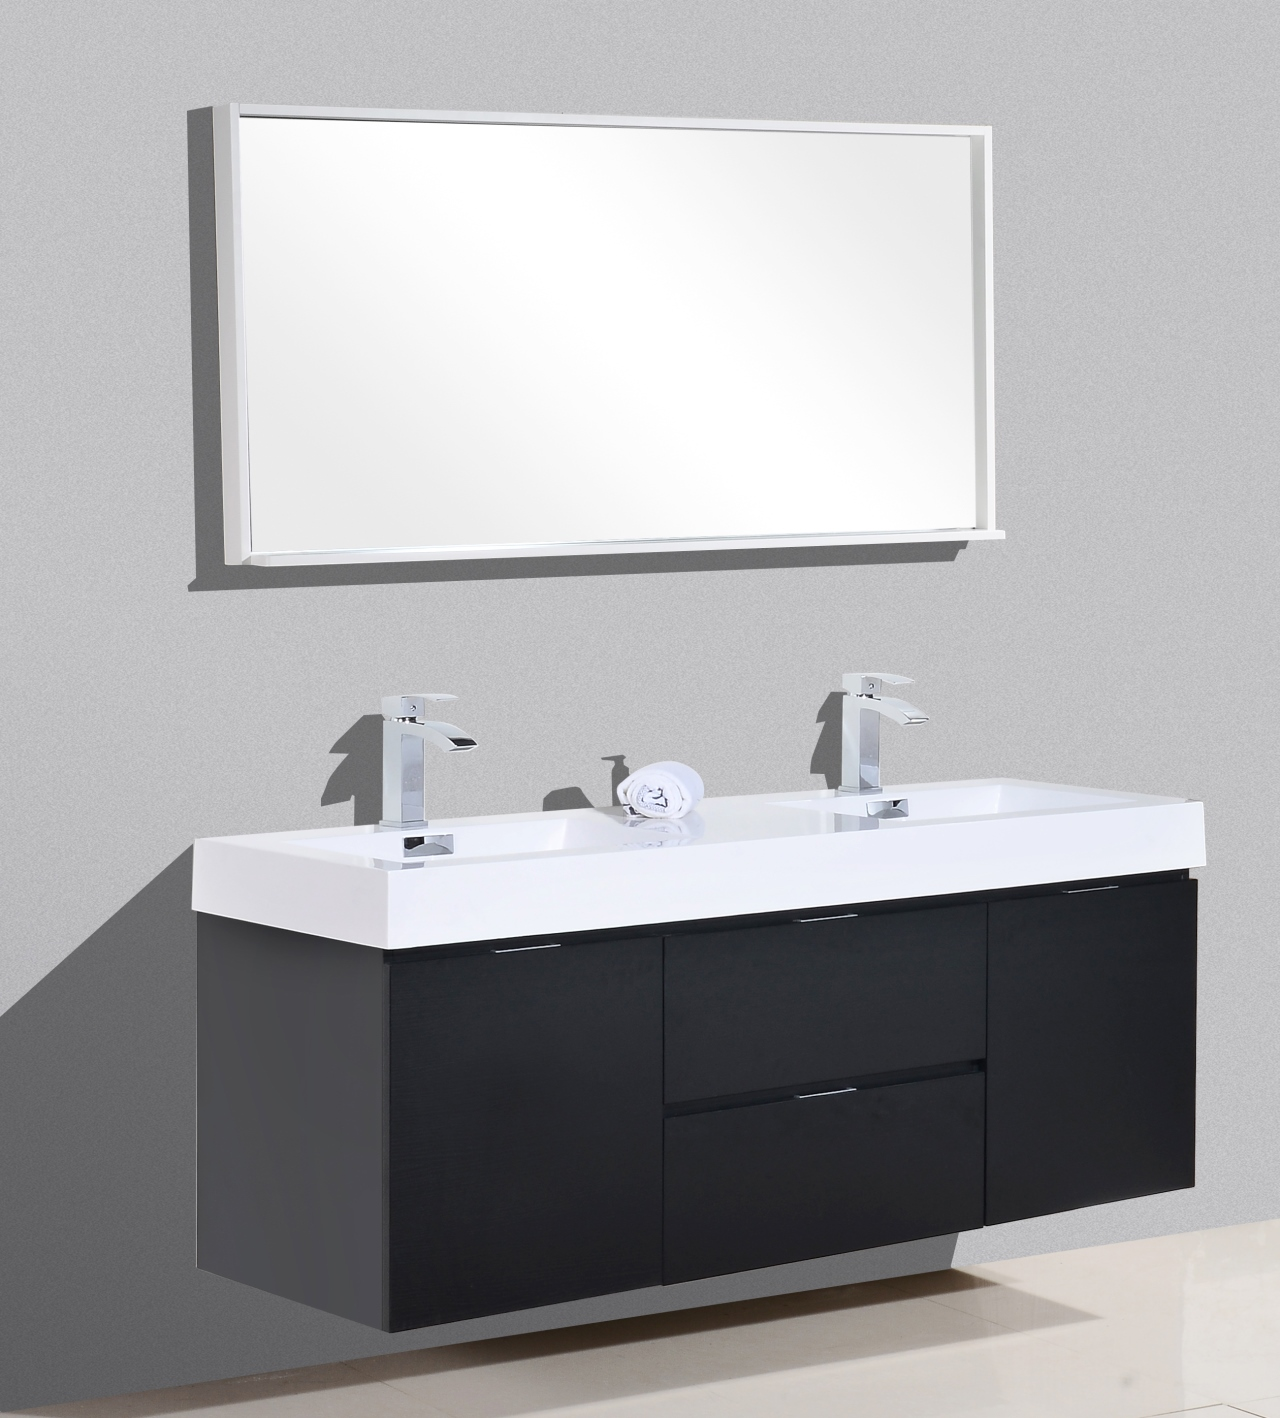 Bliss 60 black wall mount double sink modern bathroom vanity - Modern bathroom vanity double sink ...